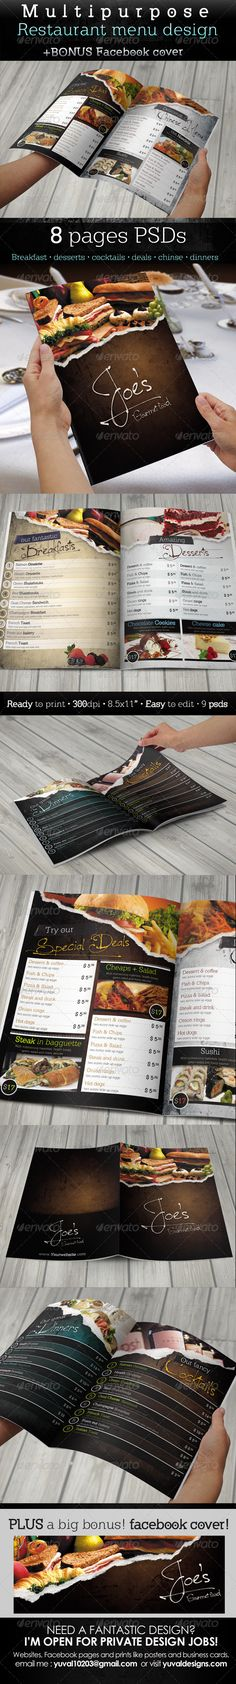 Buy Multipurpose Restaurant Menu Template by YuvalMalichi on GraphicRiver. THIS is a great creative menu for your restaurant. Food Menu Template, Restaurant Menu Template, Restaurant Menu Design, Logo Restaurant, Corporate Design, Food Menu Design, Menu Book, Menu Printing, Cocktail Desserts